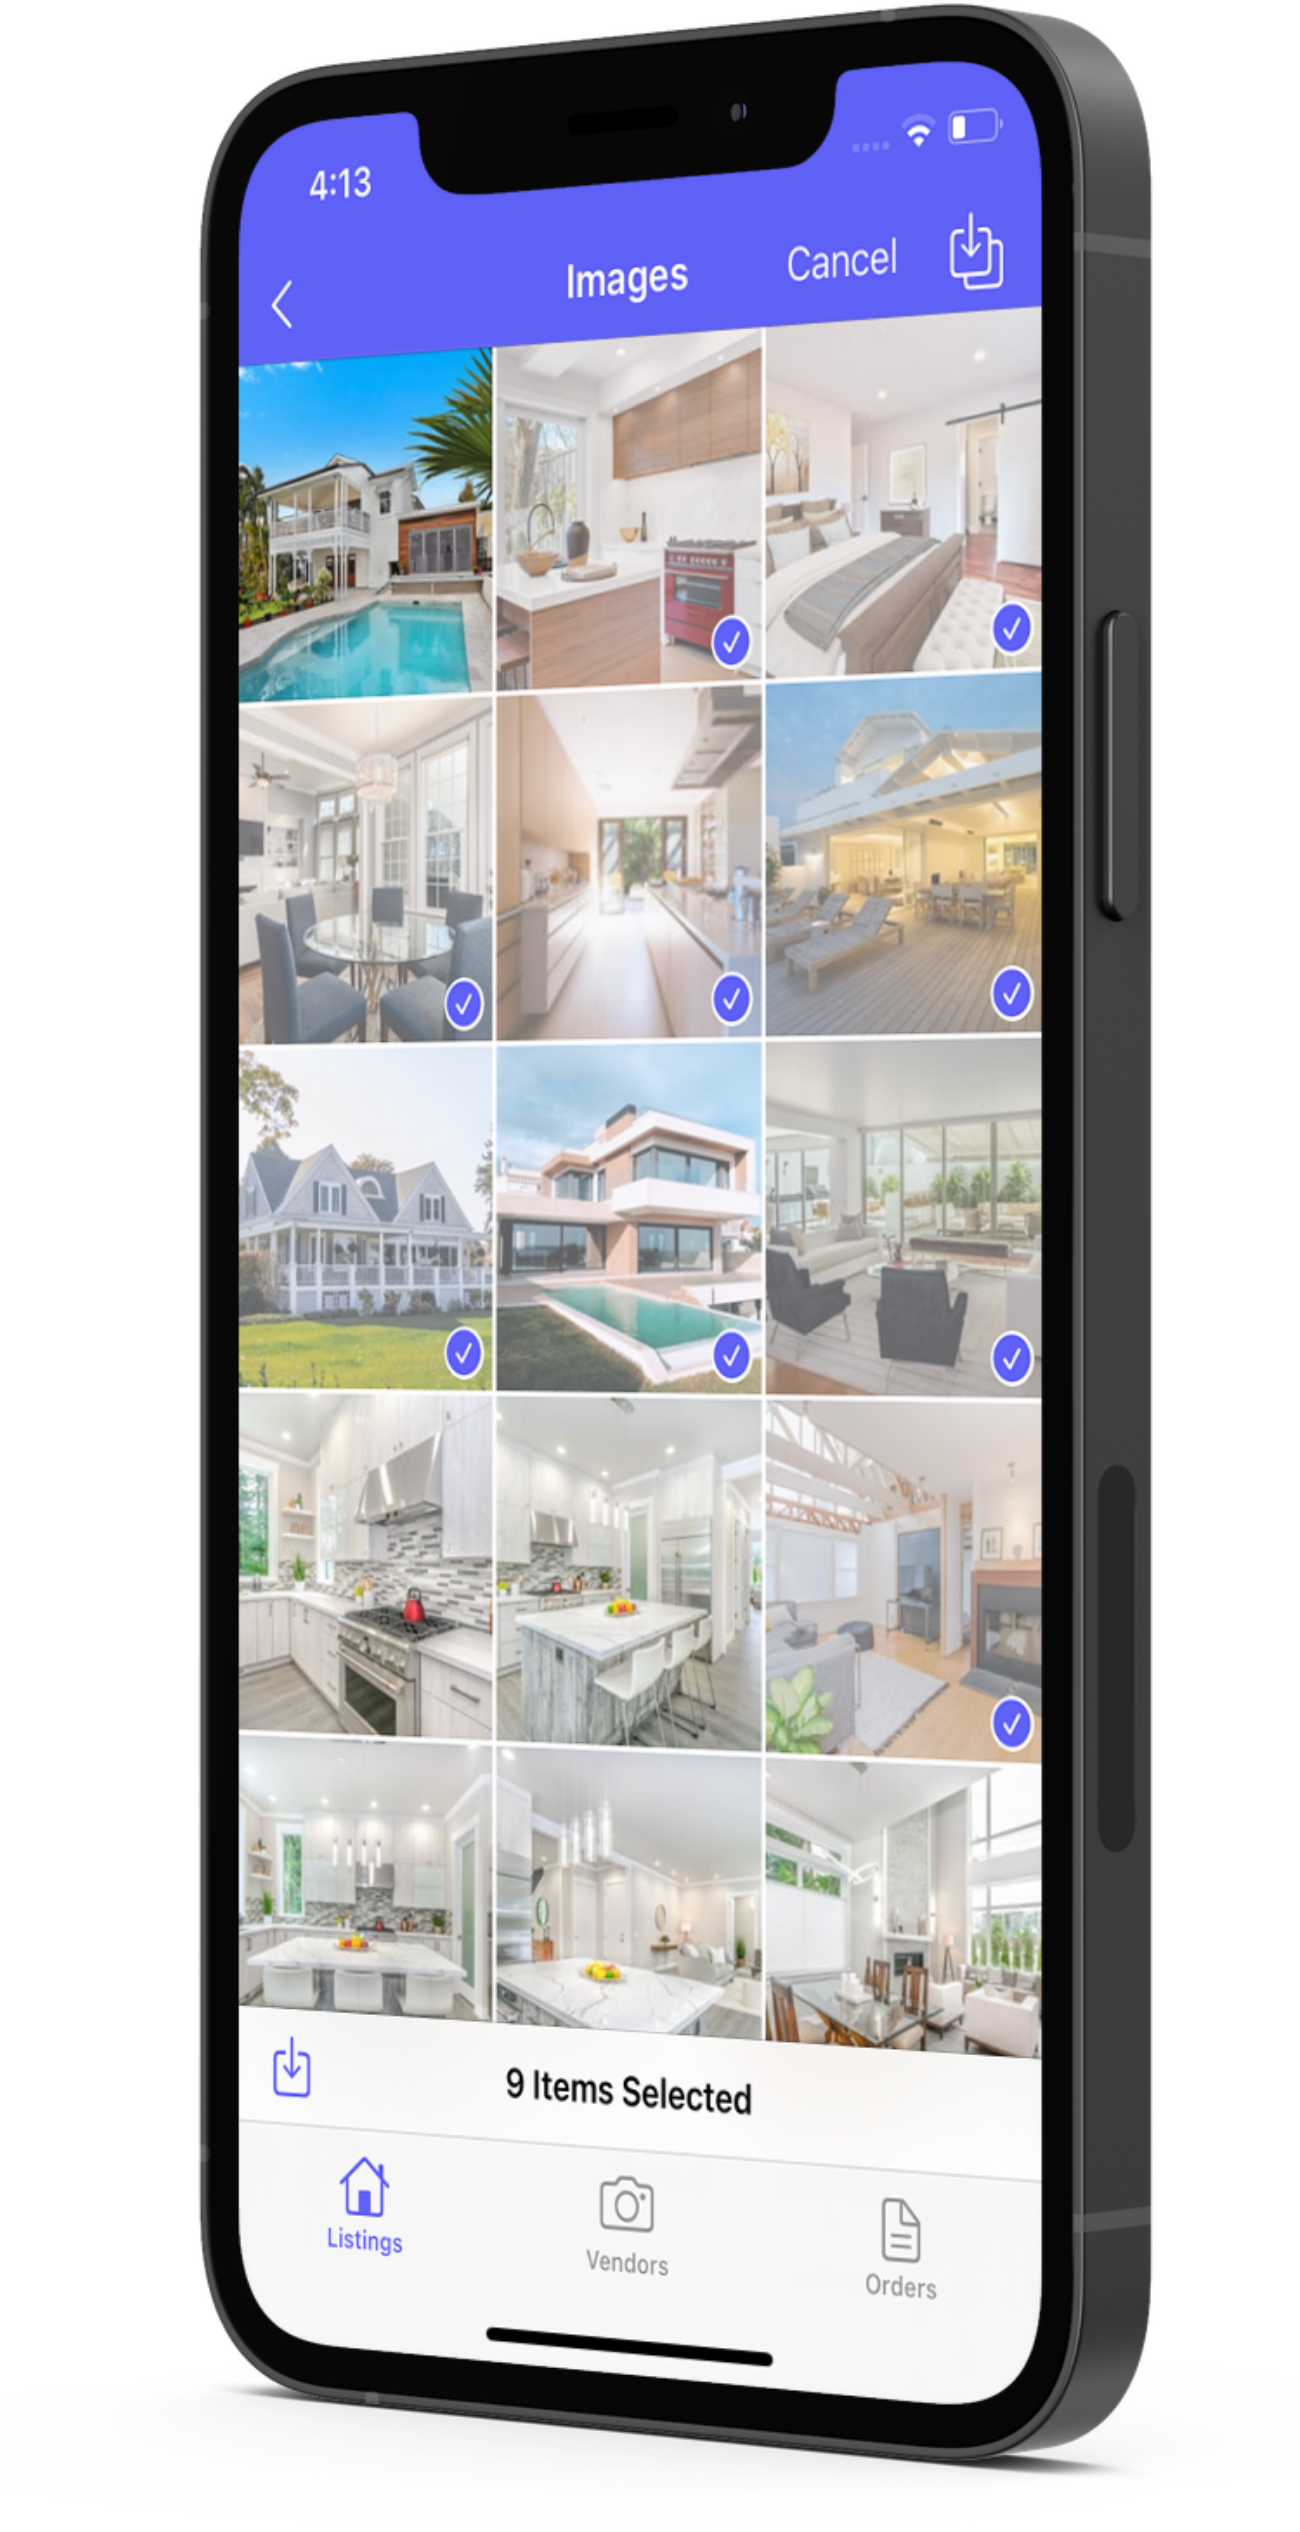 Manage your listings on the Aryeo mobile iOS listings App. Download and share images directly on your phone.